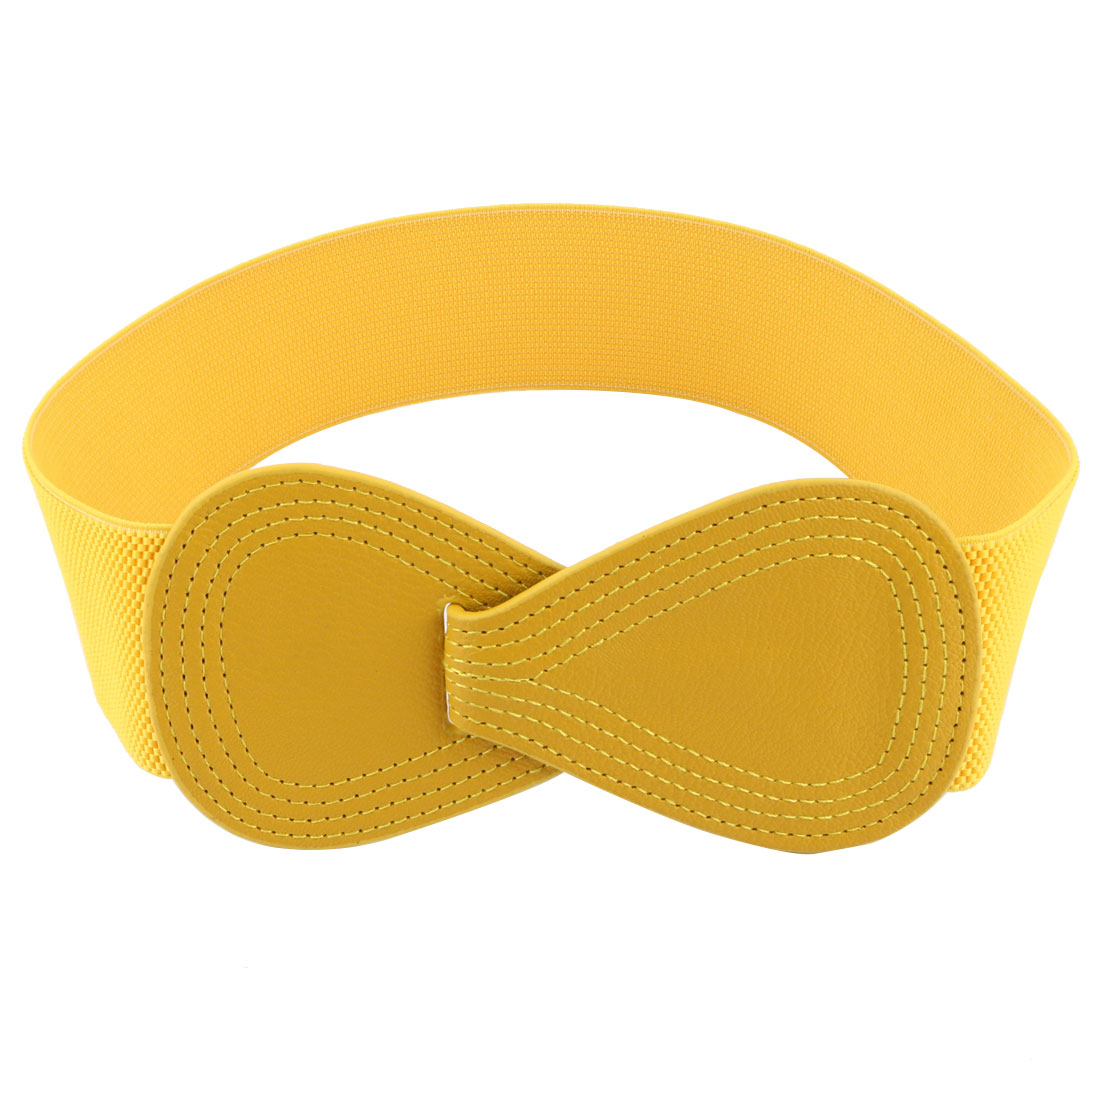 Interlock 8-shaped Faux Leather Buckle Elastic Belt Yellow for Lady